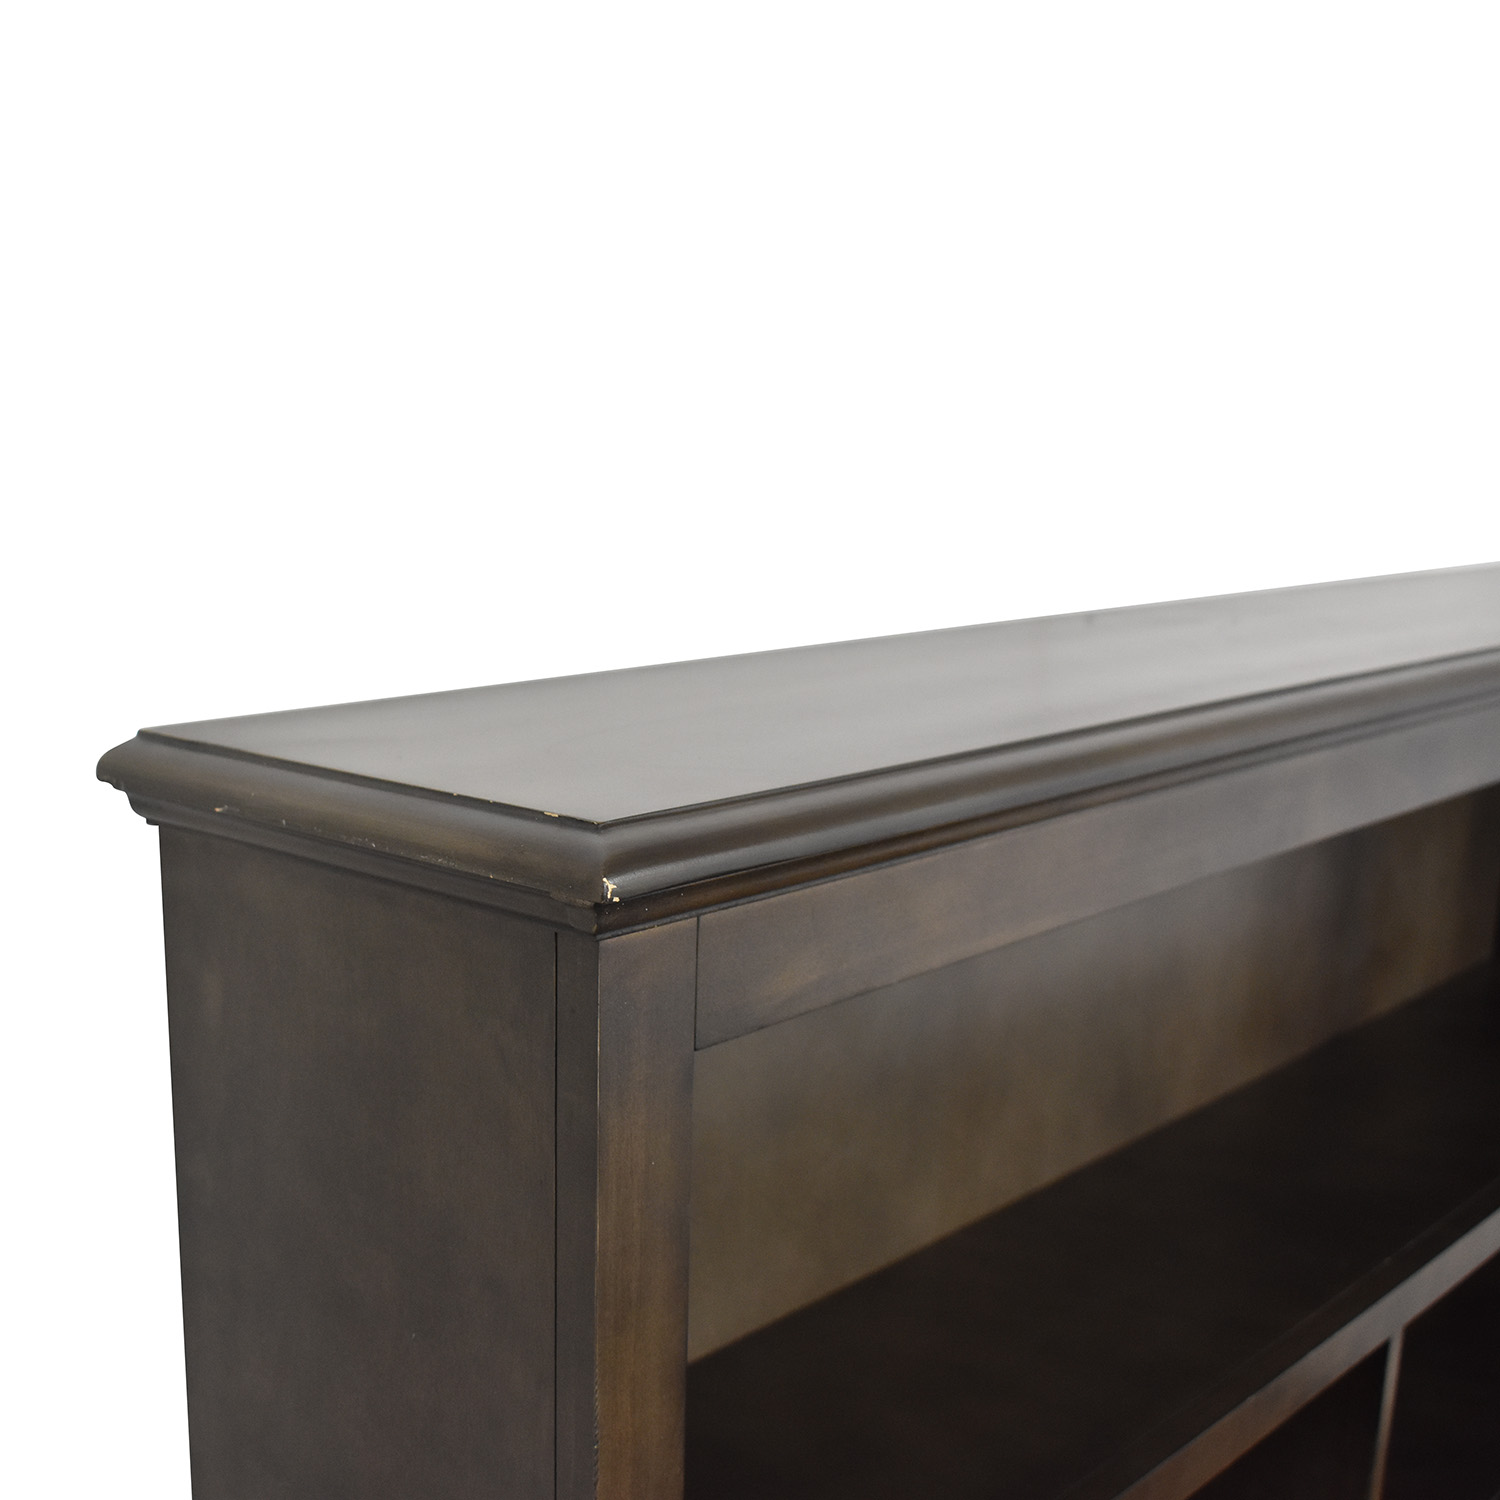 shop Raymour & Flanigan Full Storage Bed Frame Raymour & Flanigan Bed Frames